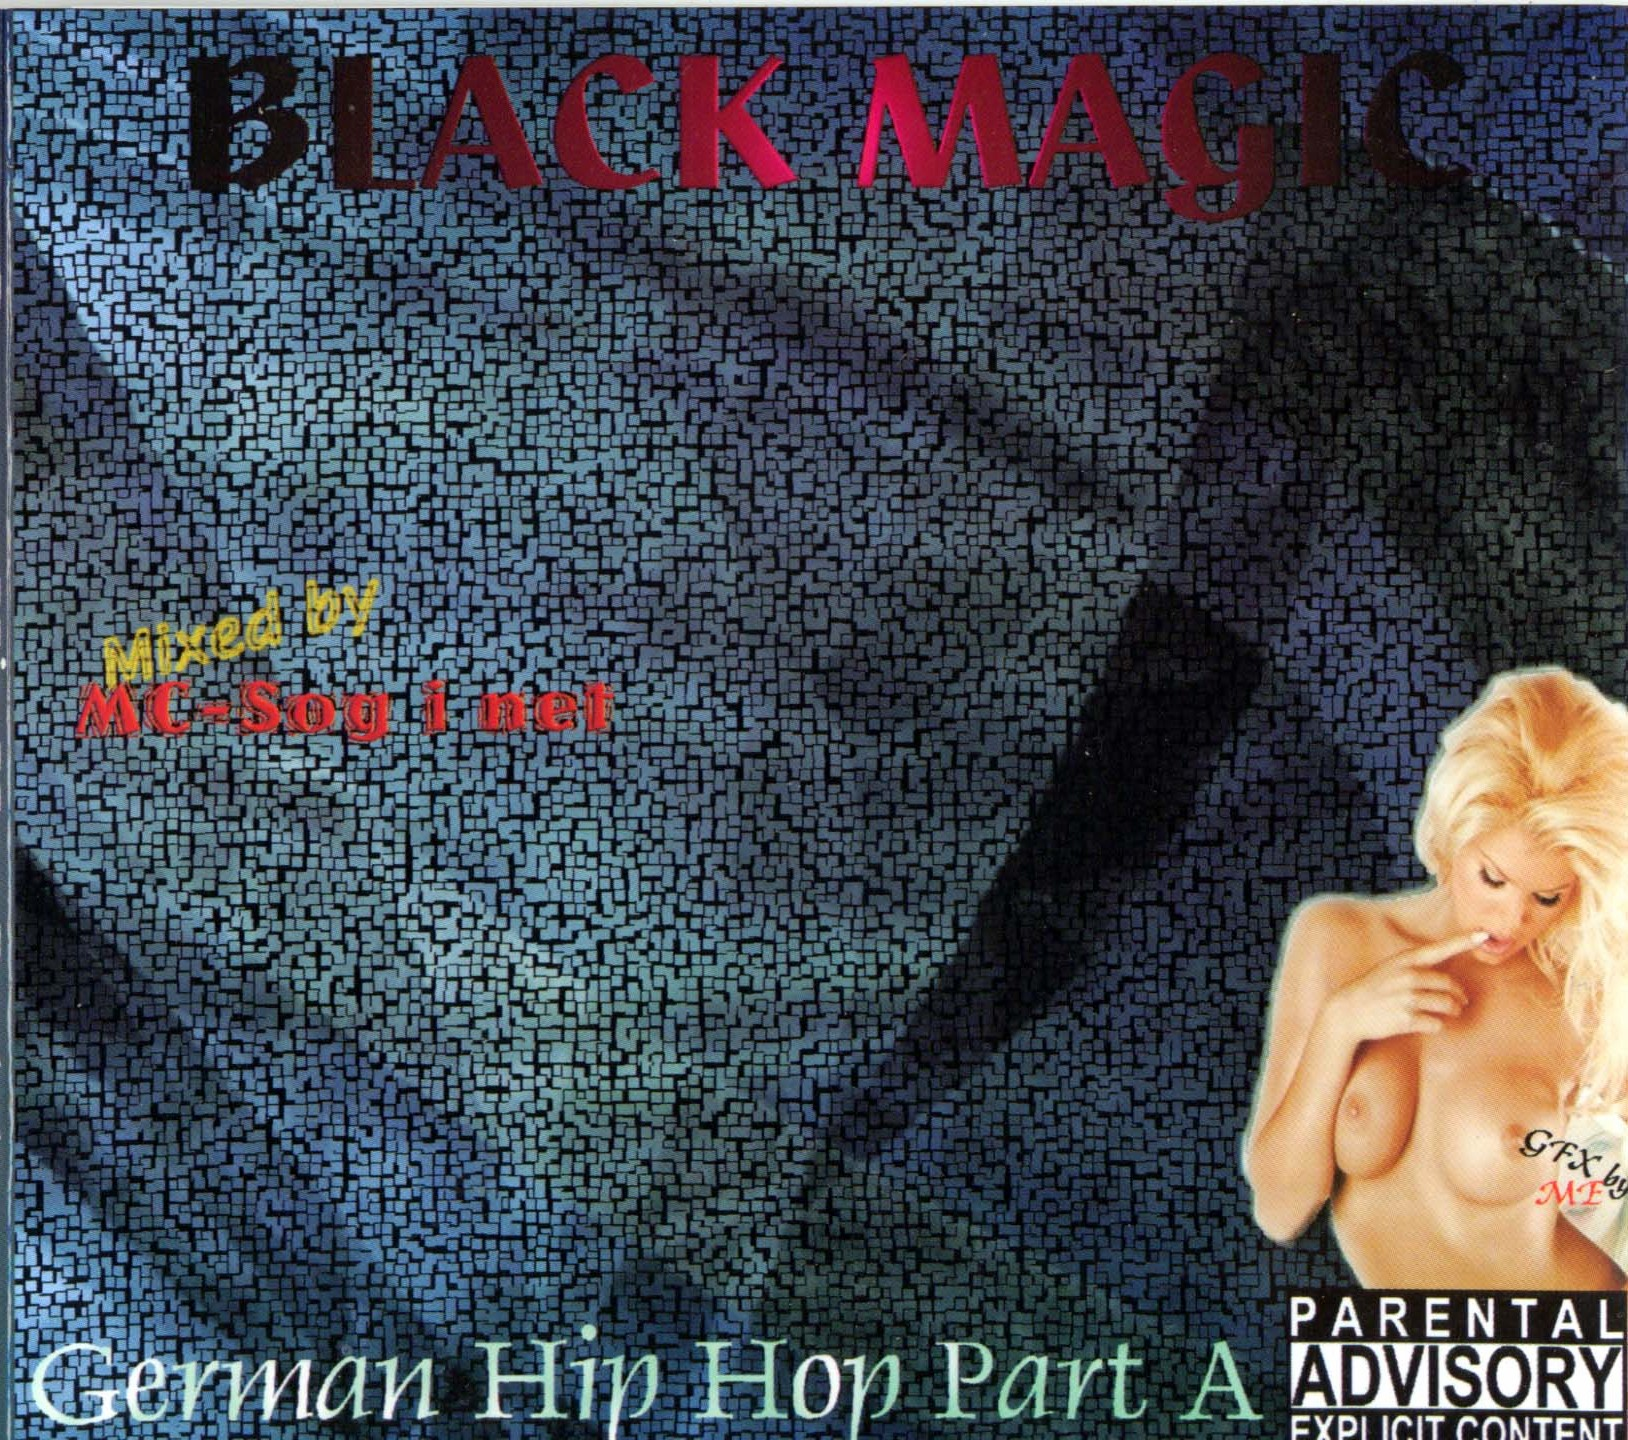 Black Magic - German Hip Hop Part A